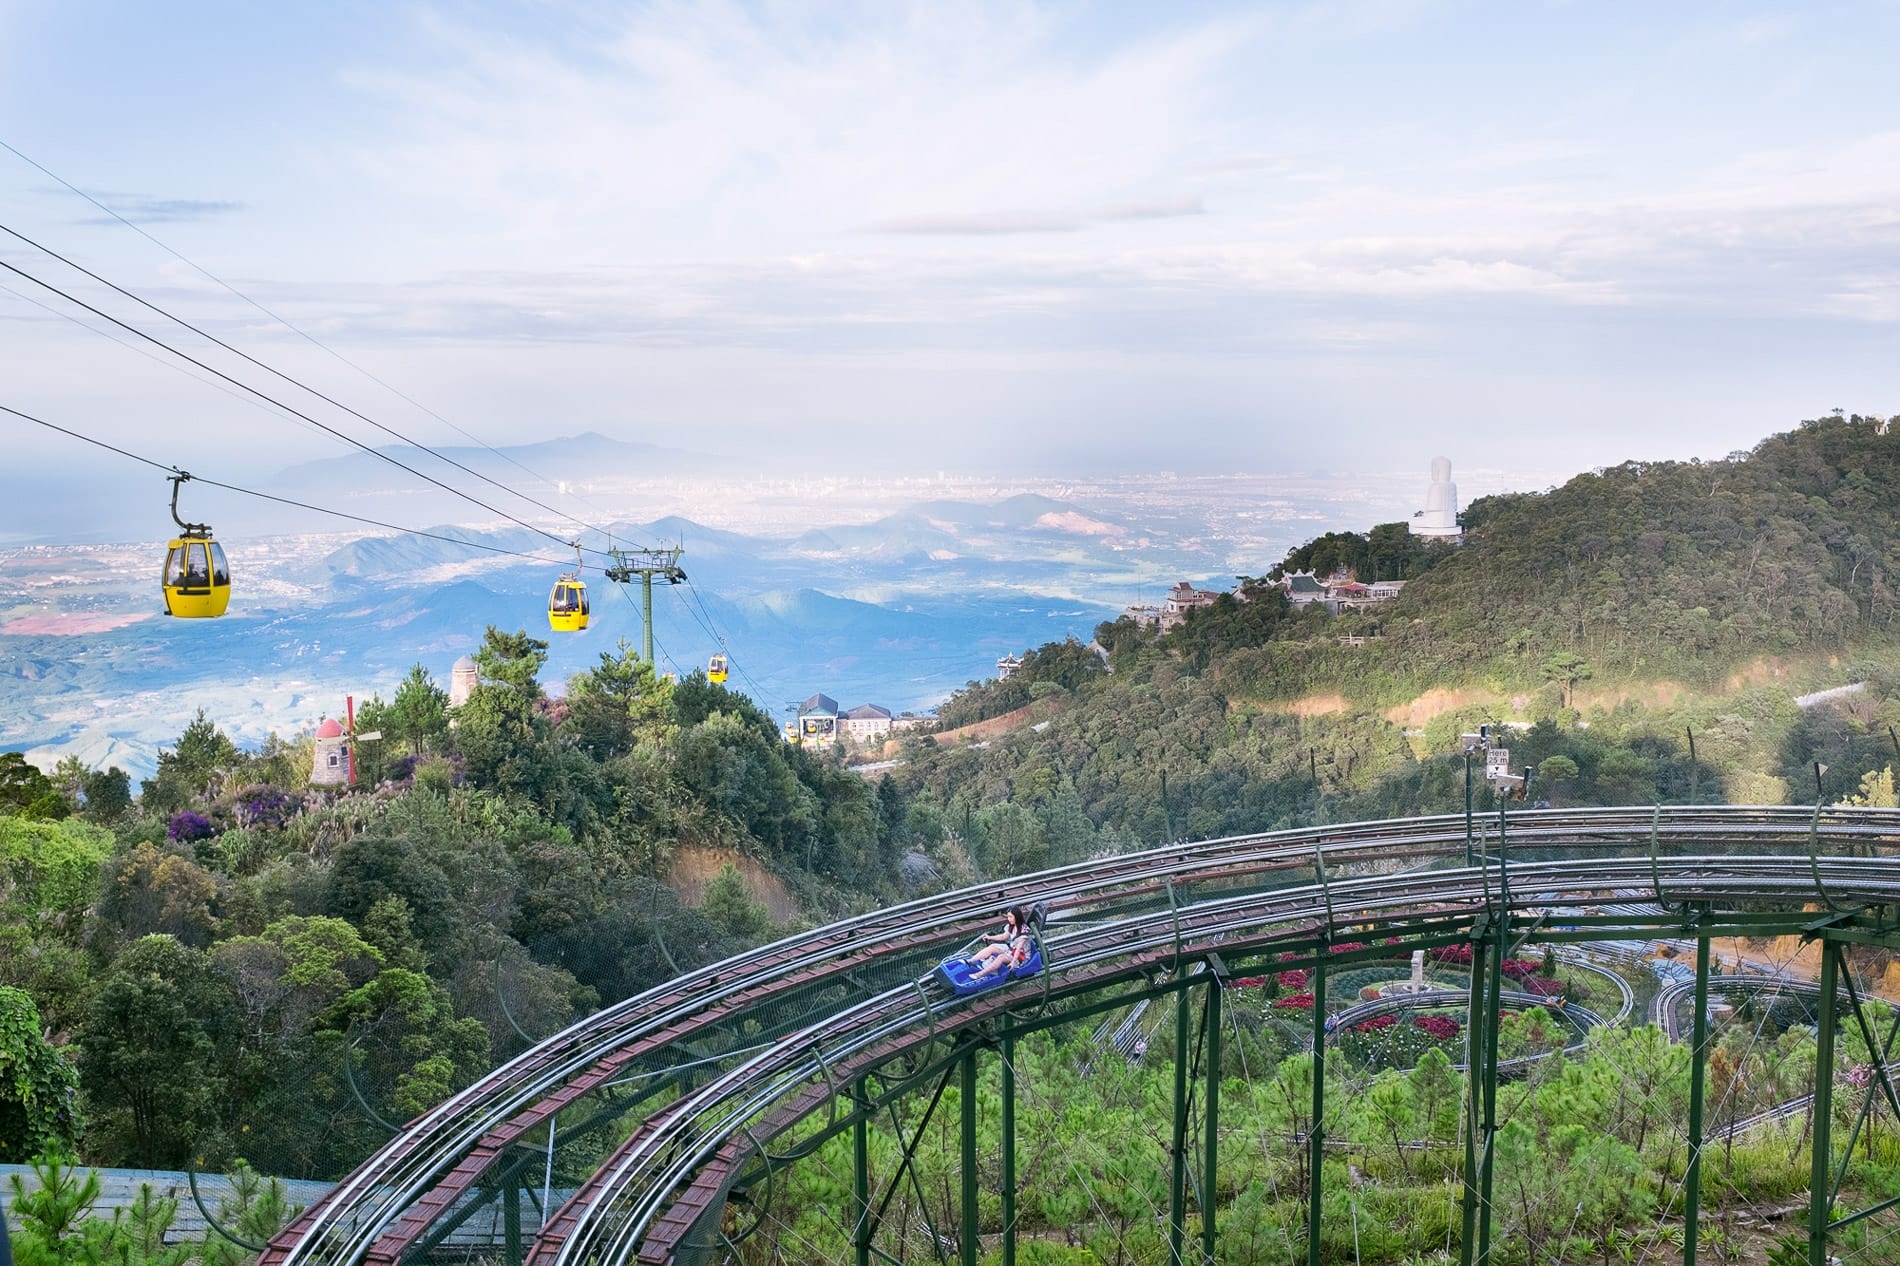 The Ba Na Hills cable over looking over Da Nang